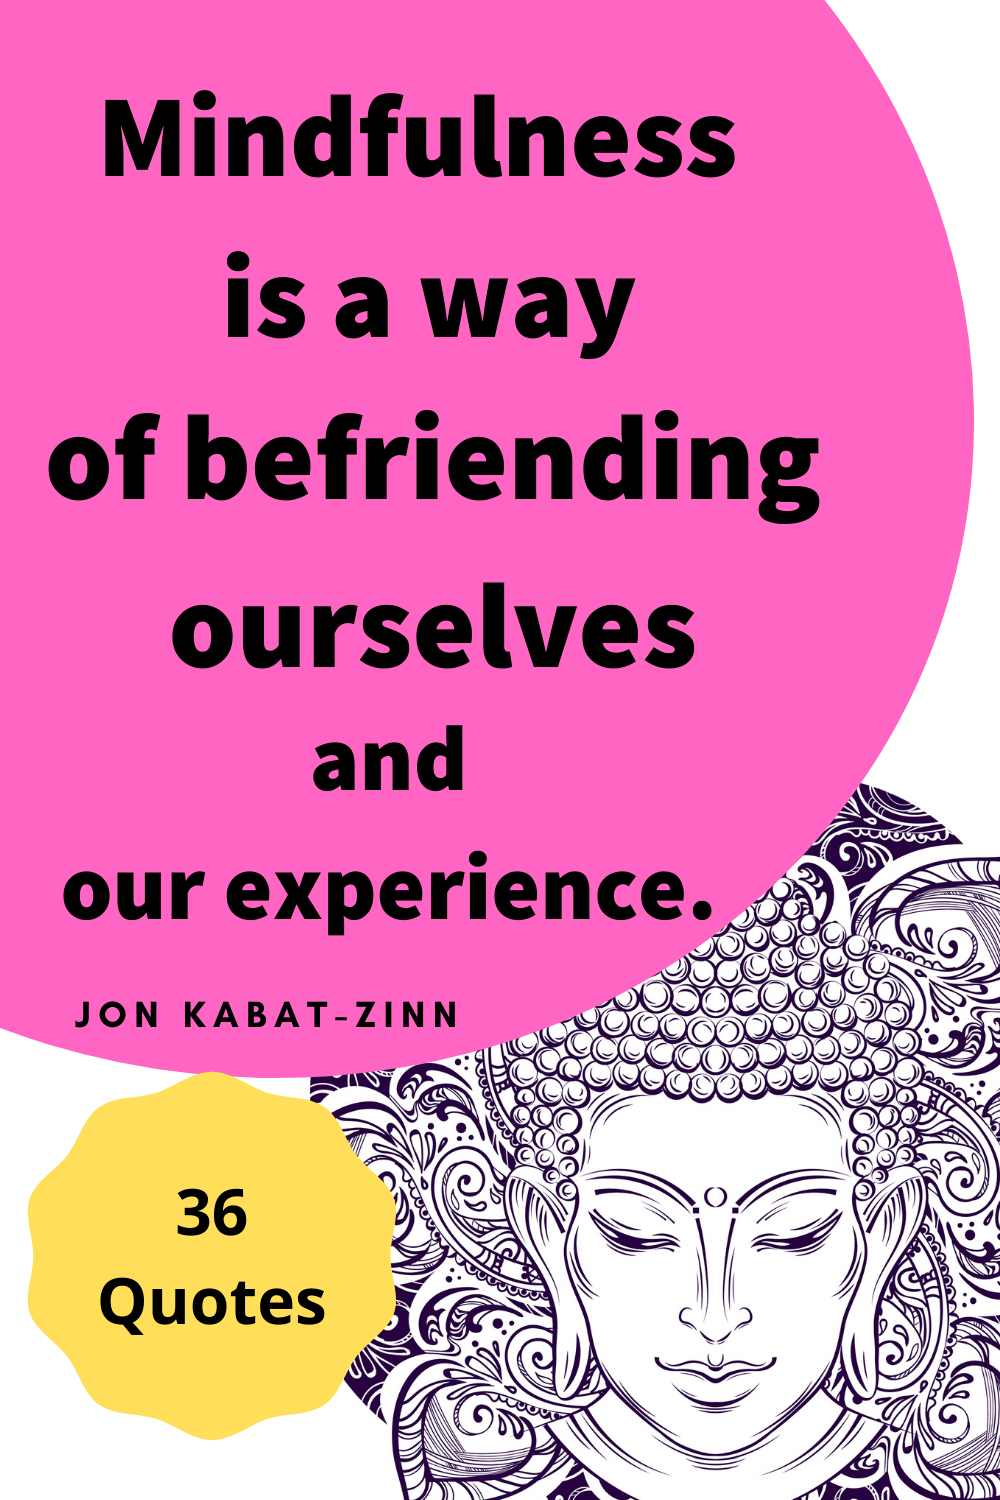 Jon Kabat-Zinn Quotes 36 Great Quotes